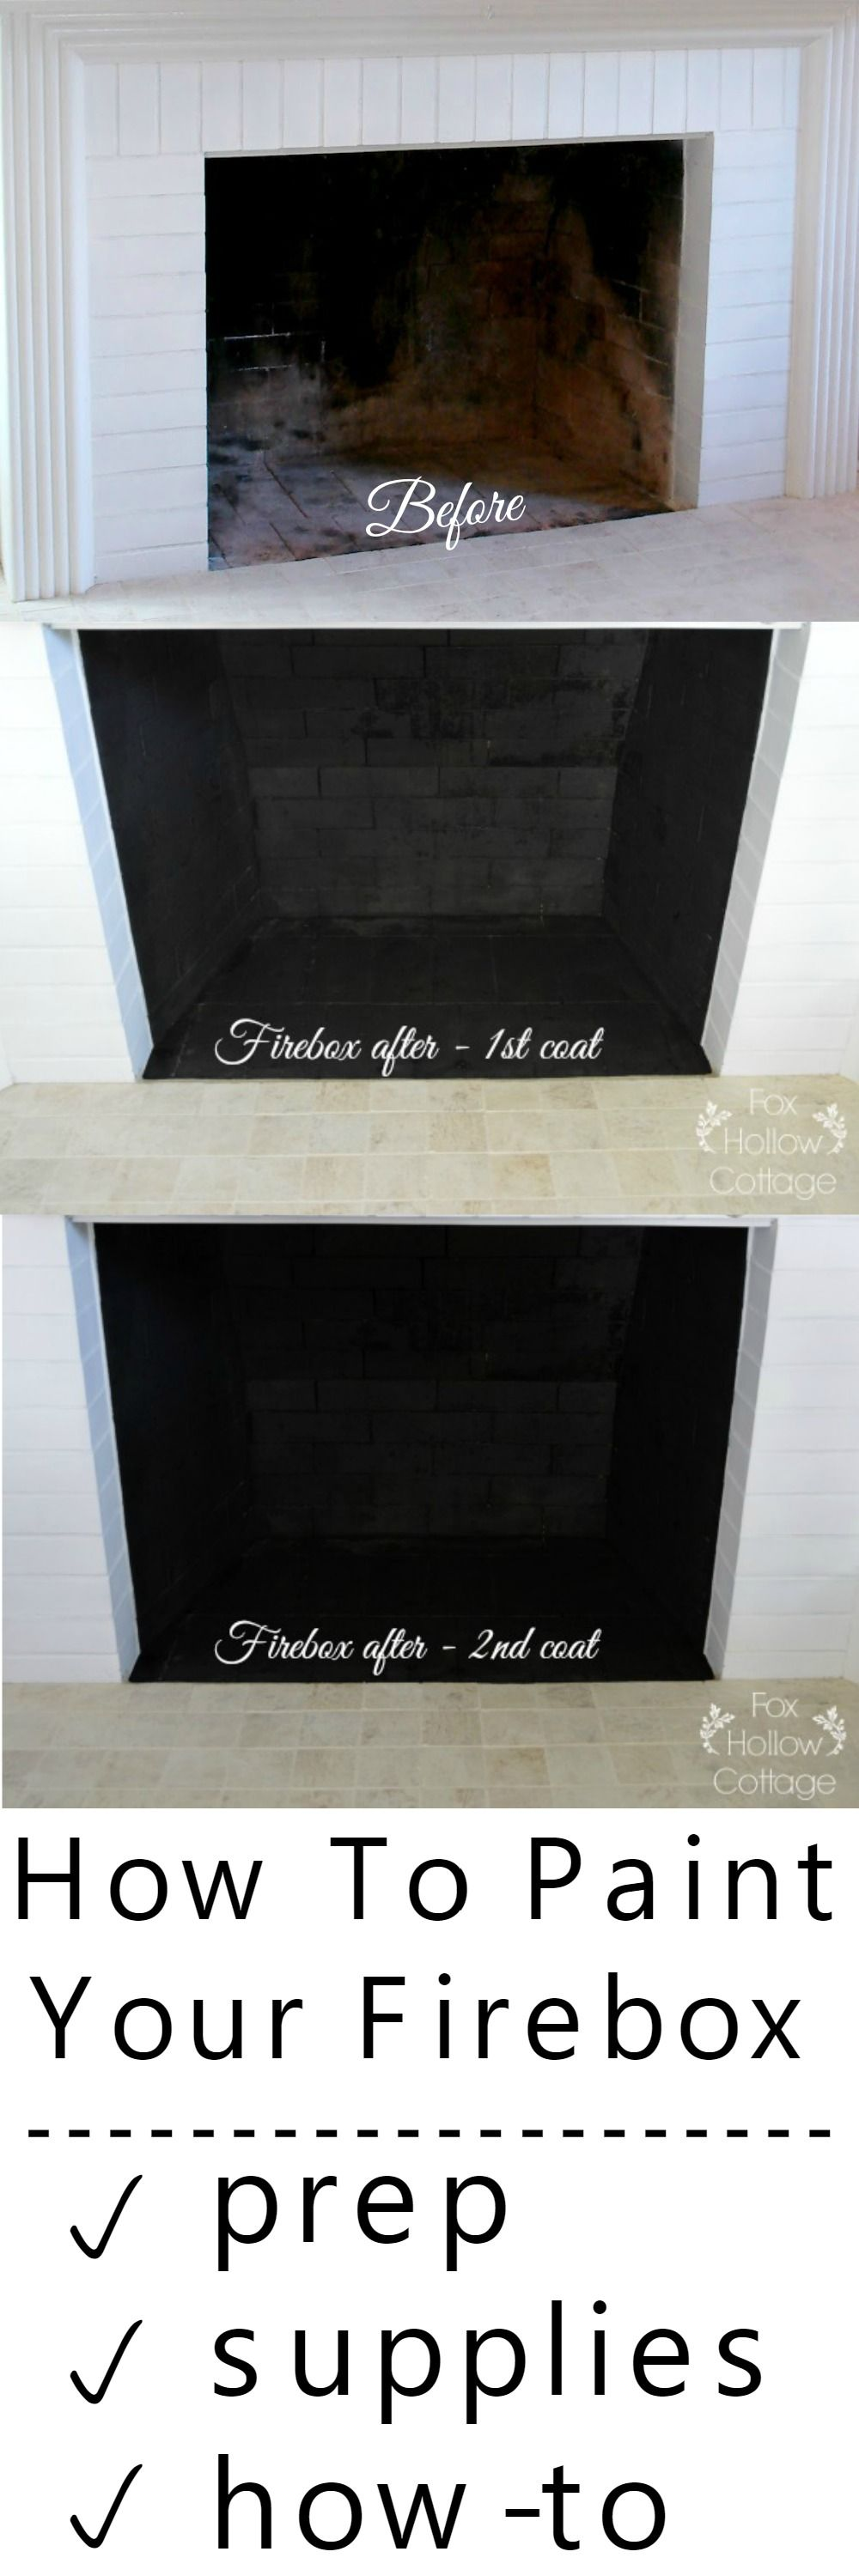 How To Paint A Fireplace Firebox | Winter, Living rooms and House